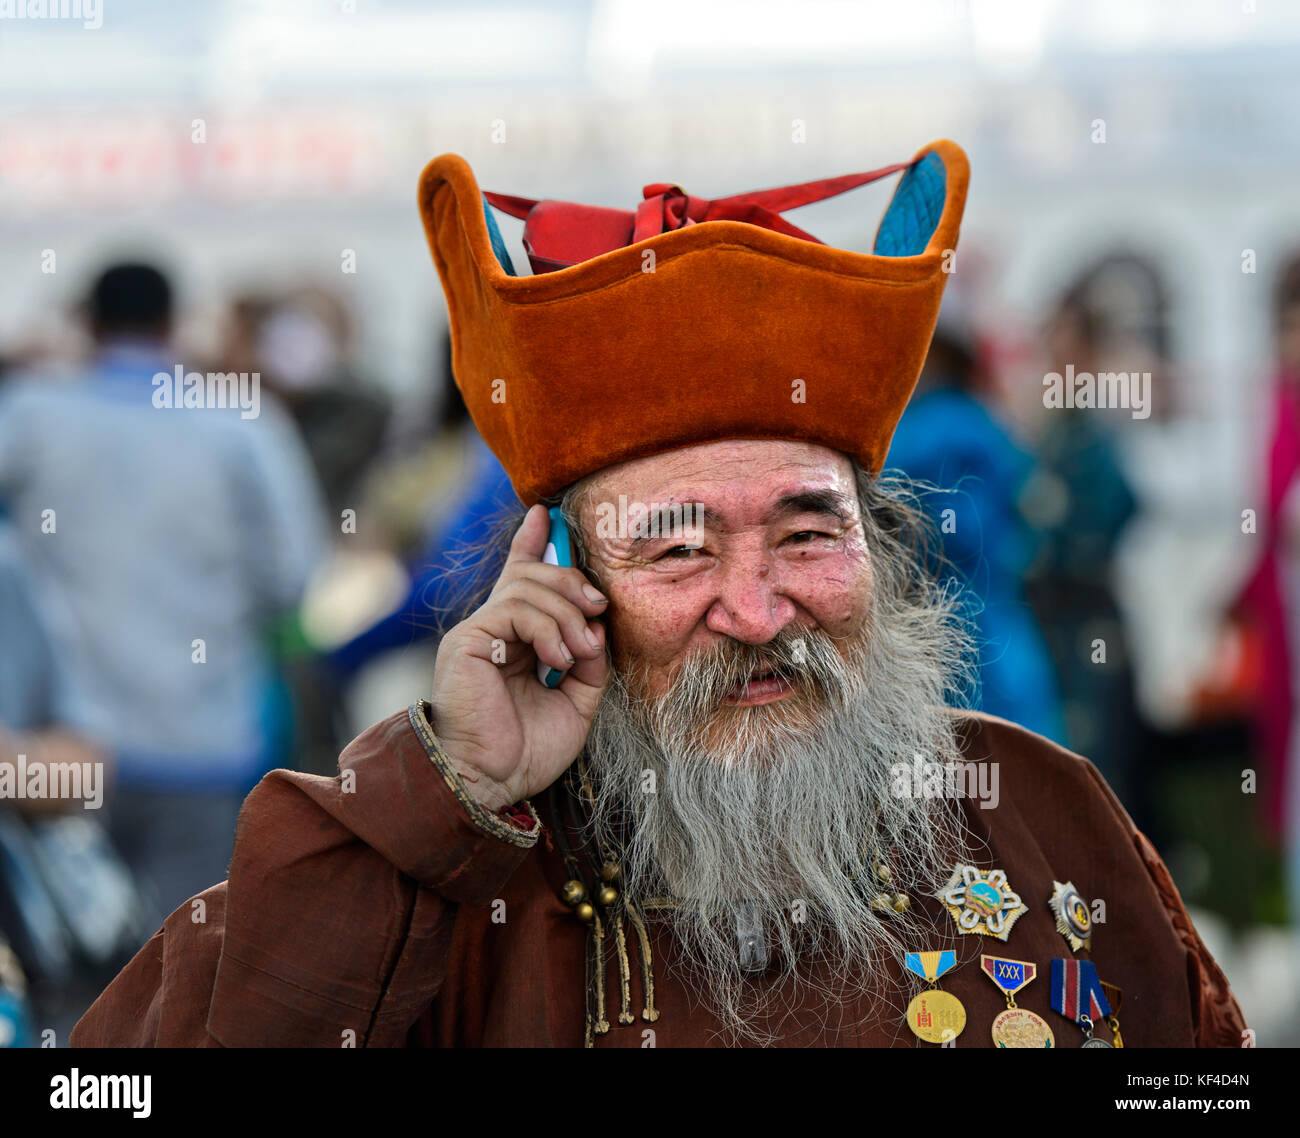 Elderly man with beard, head-dress and medals is talking on a mobile phone, Ulaanbaatar, Mongolia - Stock Image